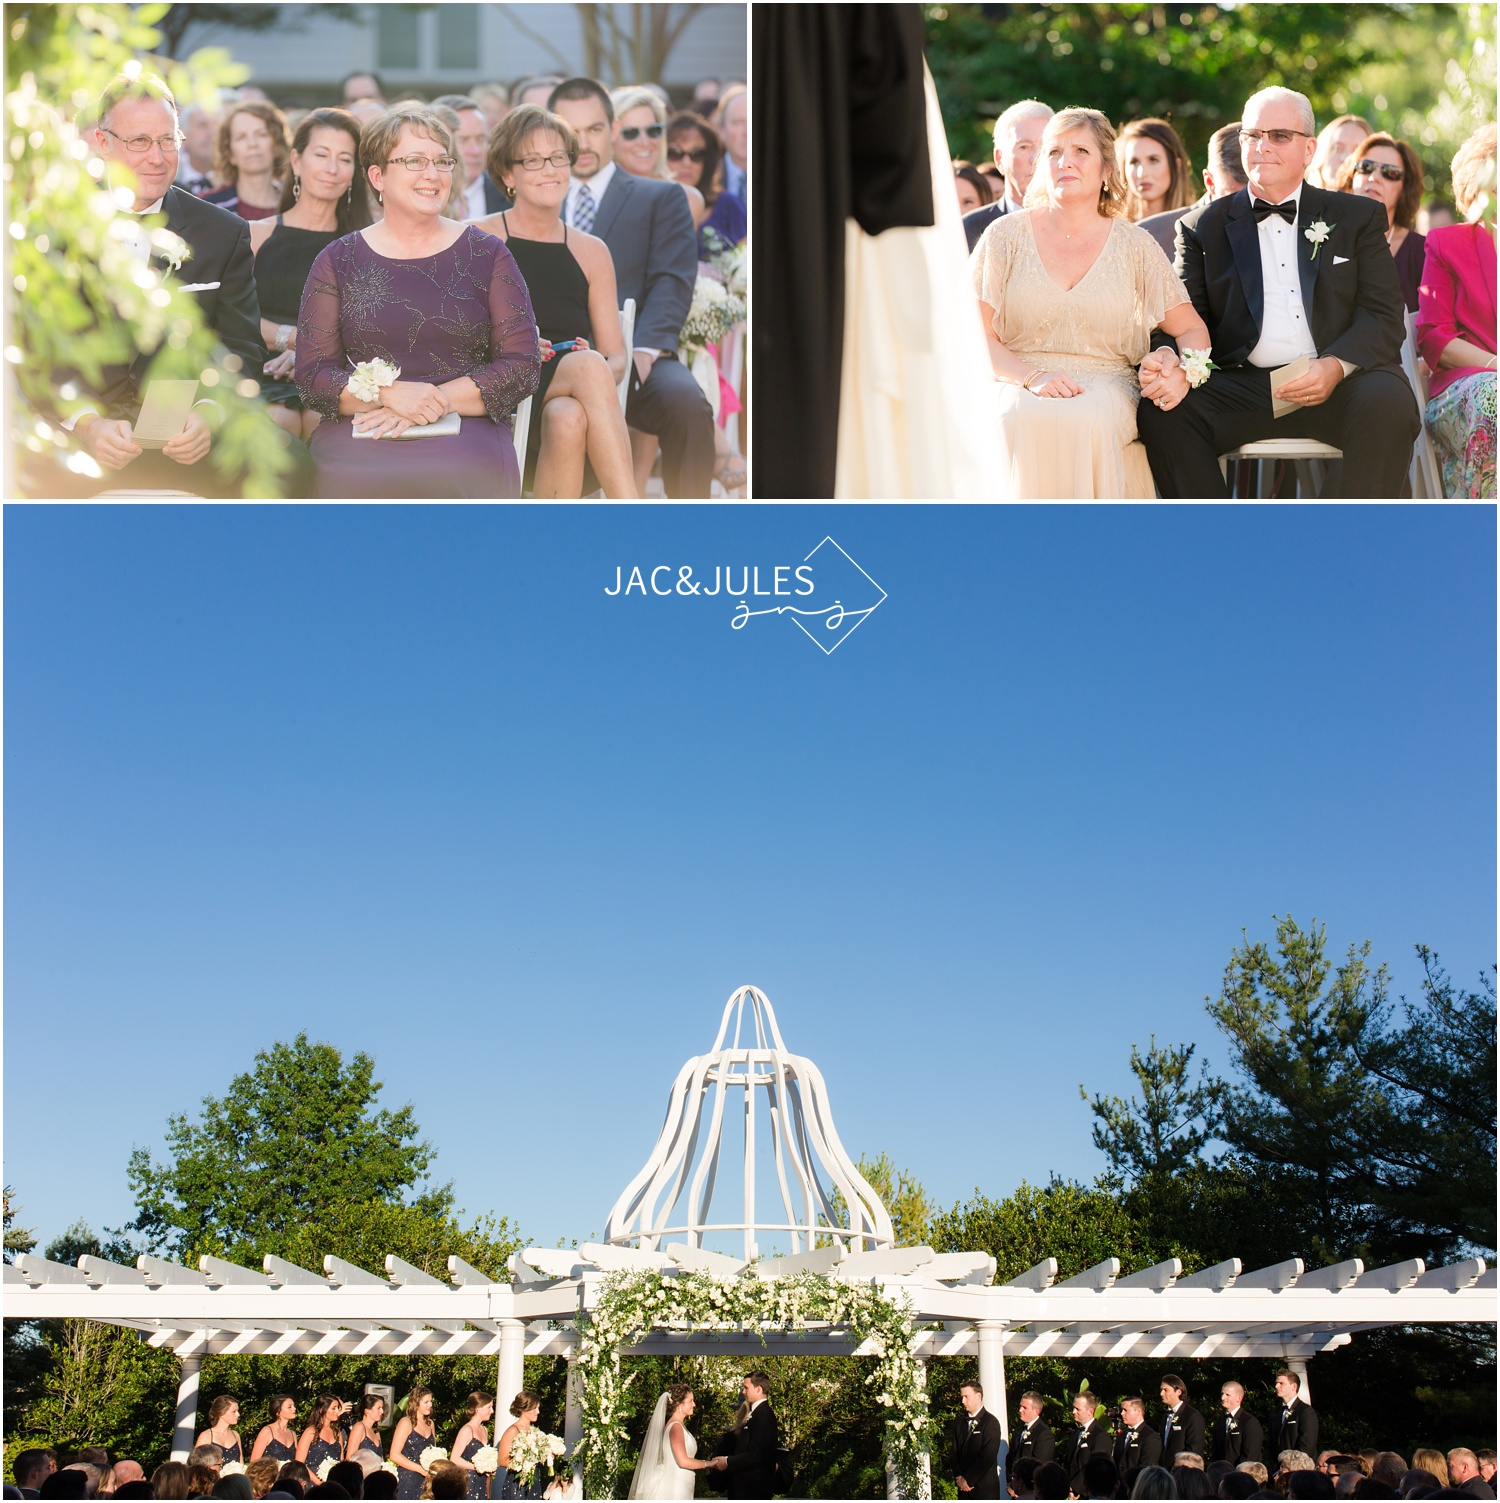 wedding ceremony at eagle oaks golf and country club in wall, nj.